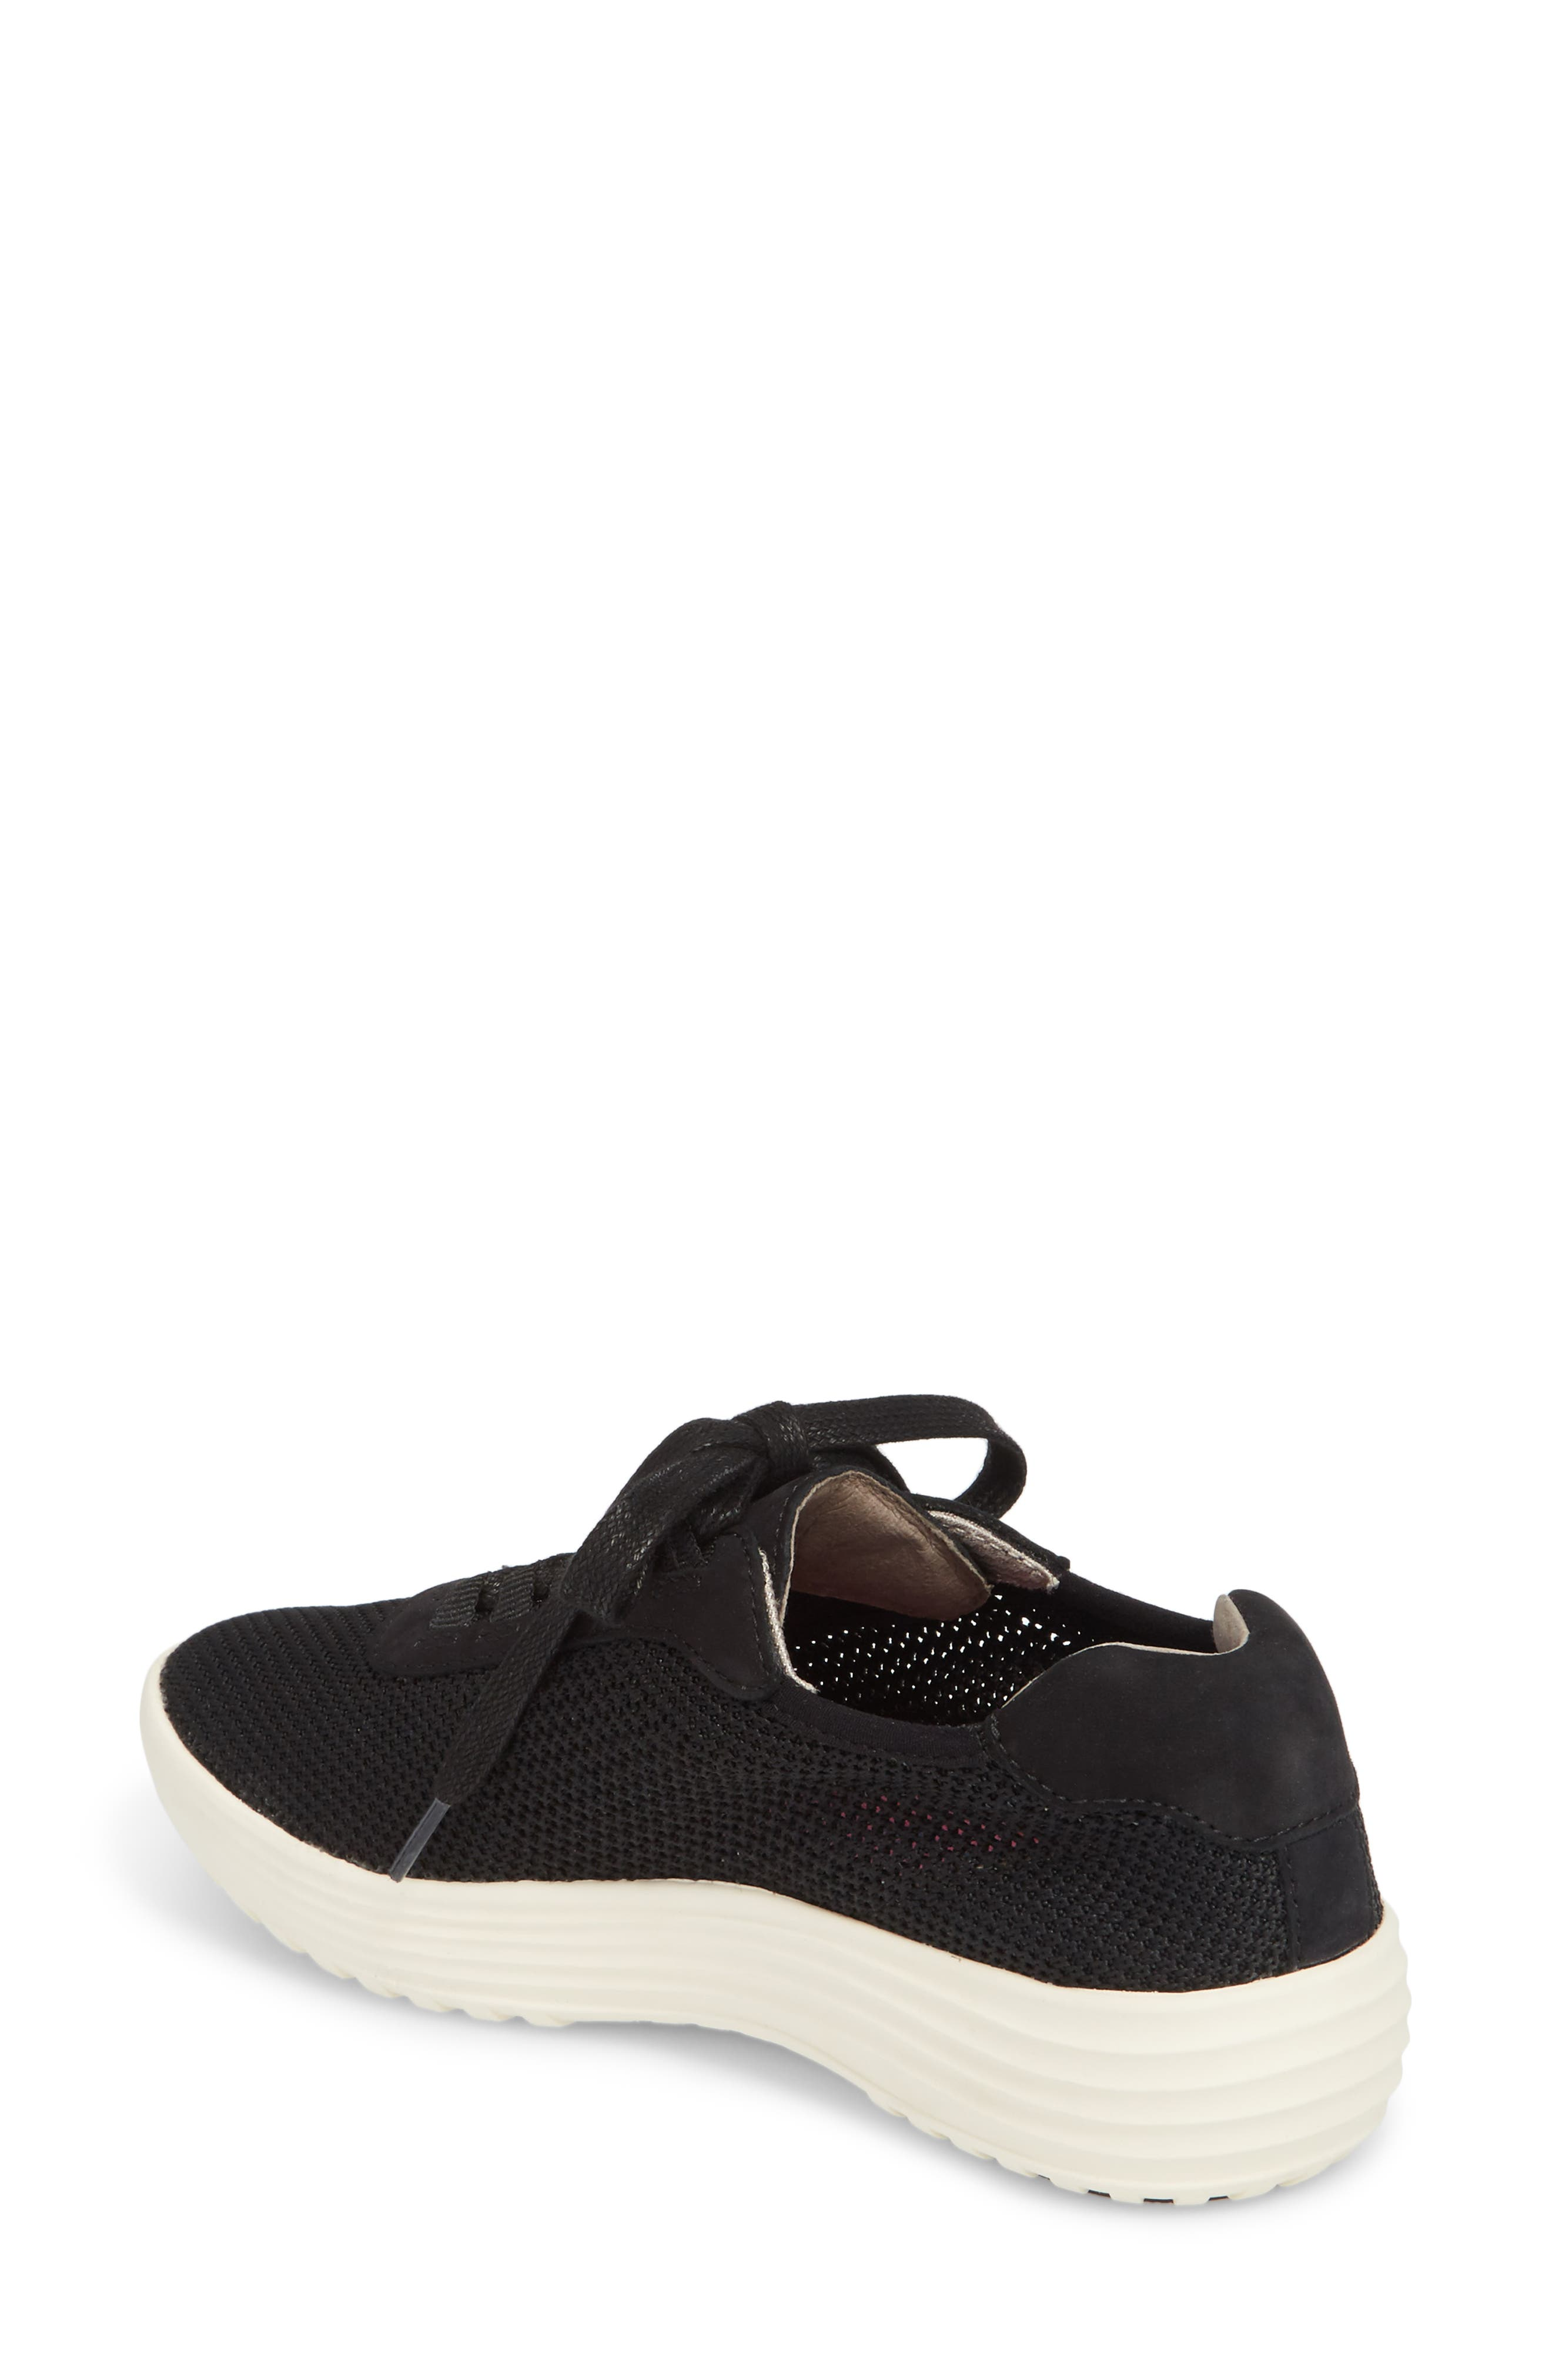 Malibu Sneaker,                             Alternate thumbnail 2, color,                             BLACK KNIT FABRIC